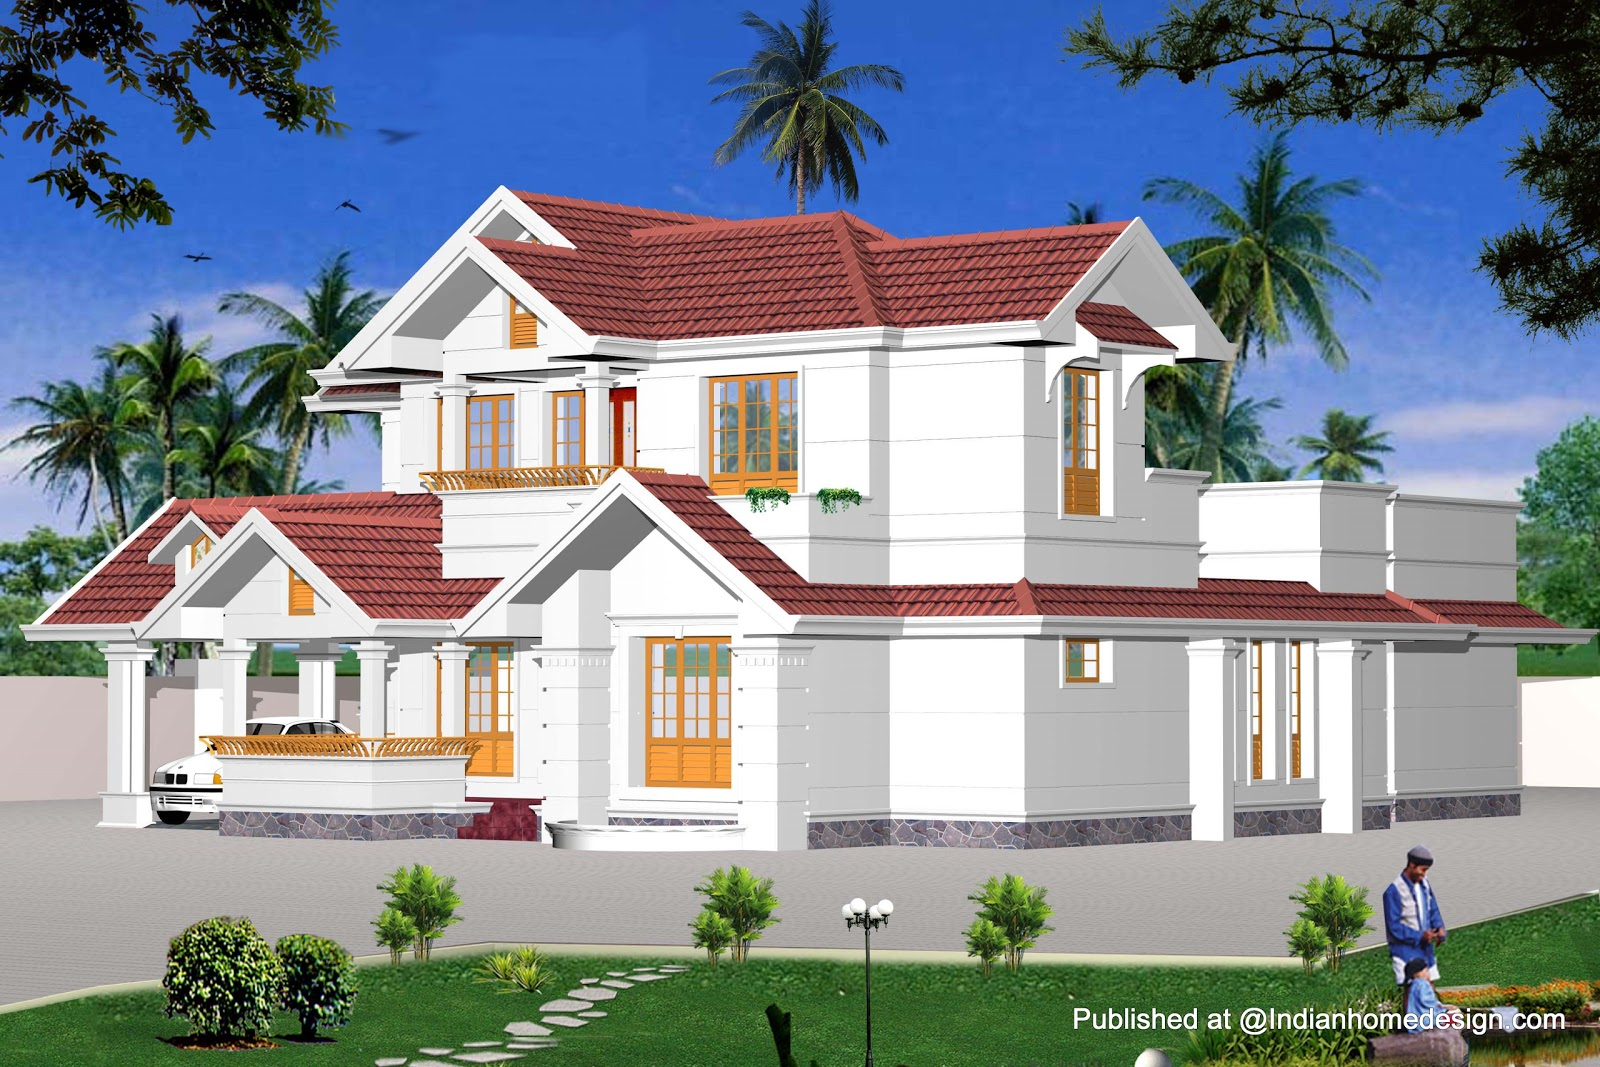 House plans New model house plan